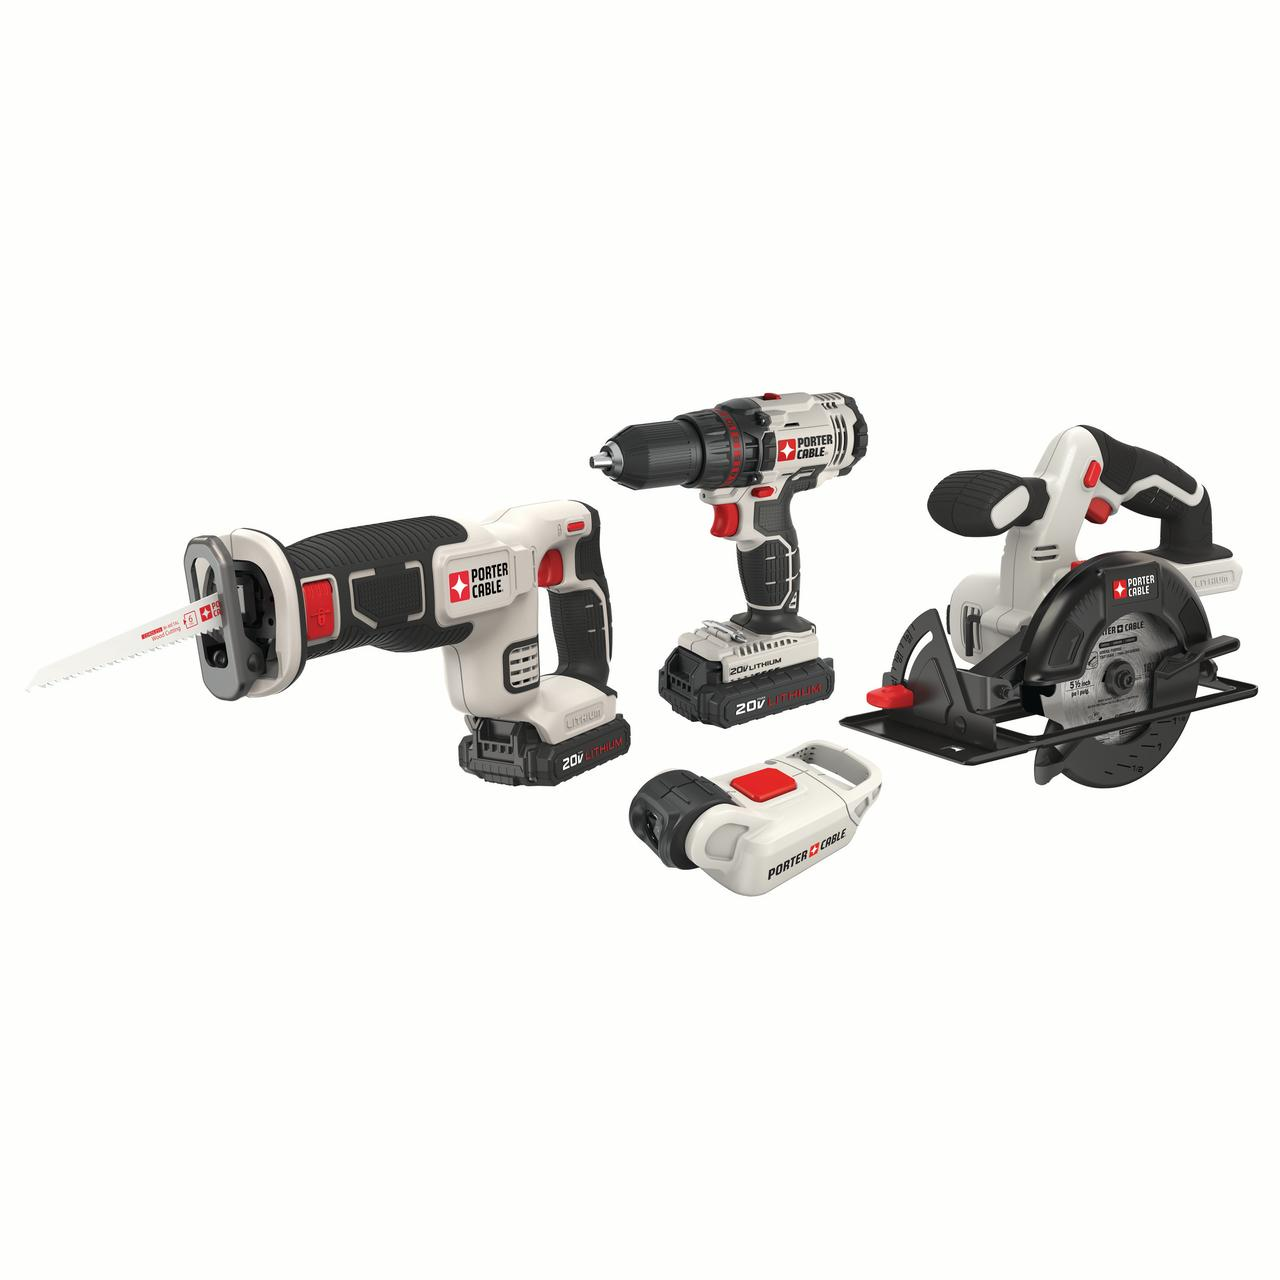 PORTER CABLE PCCK612L2 20V MAX Lithium-Ion 1/2-Inch Cordless Drill & -Inch Circular Saw